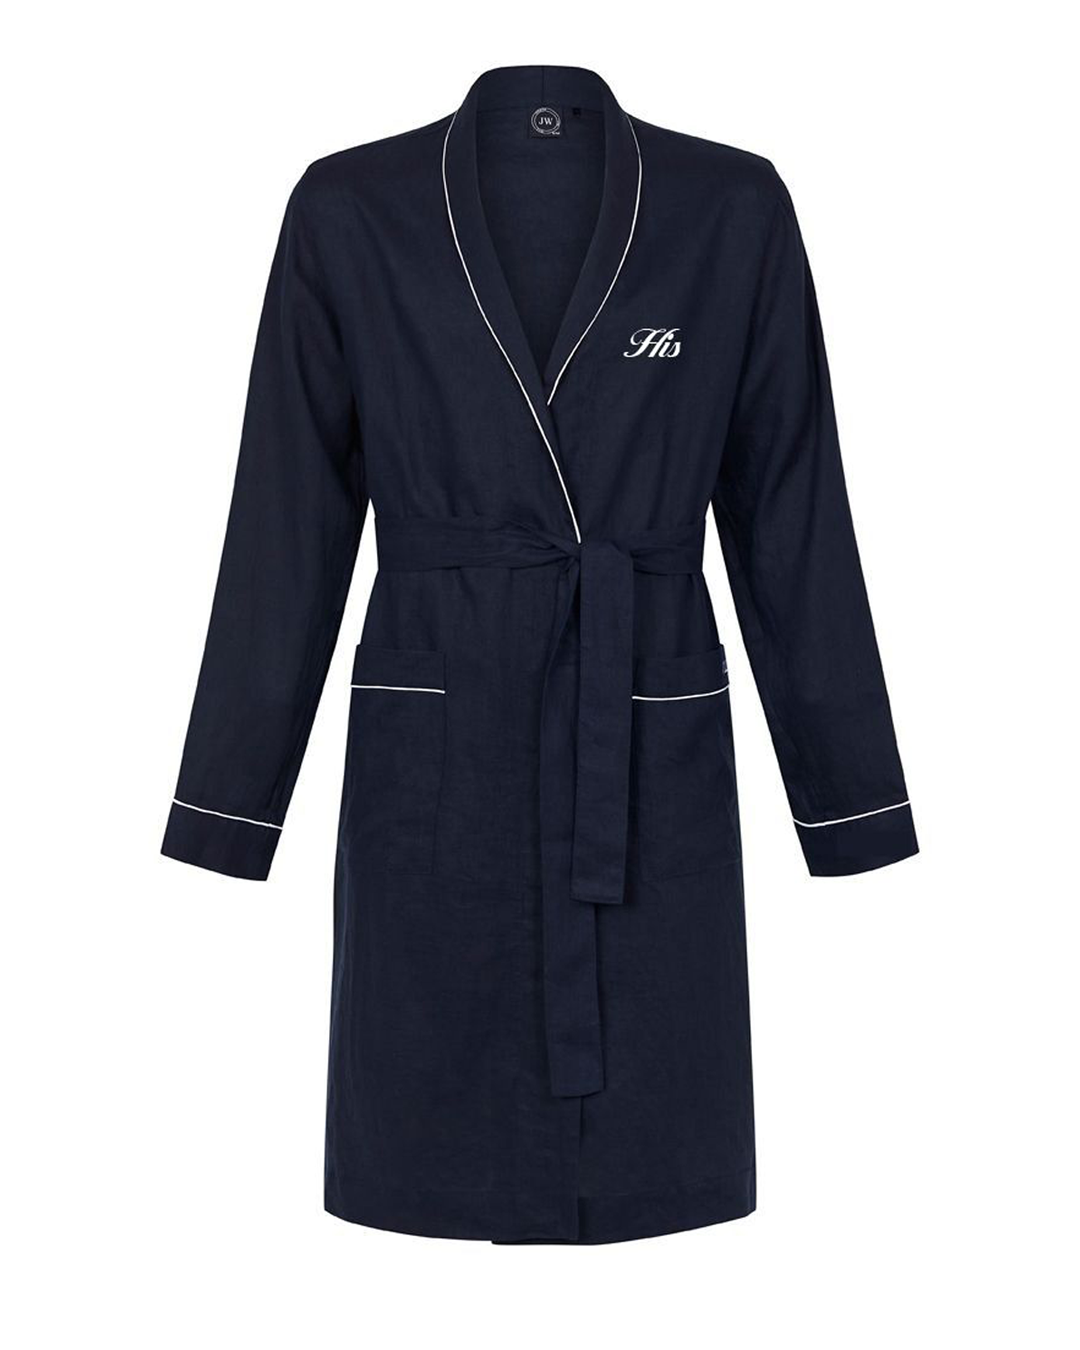 A navy blue knee-length linen robe, monogrammed 'His'